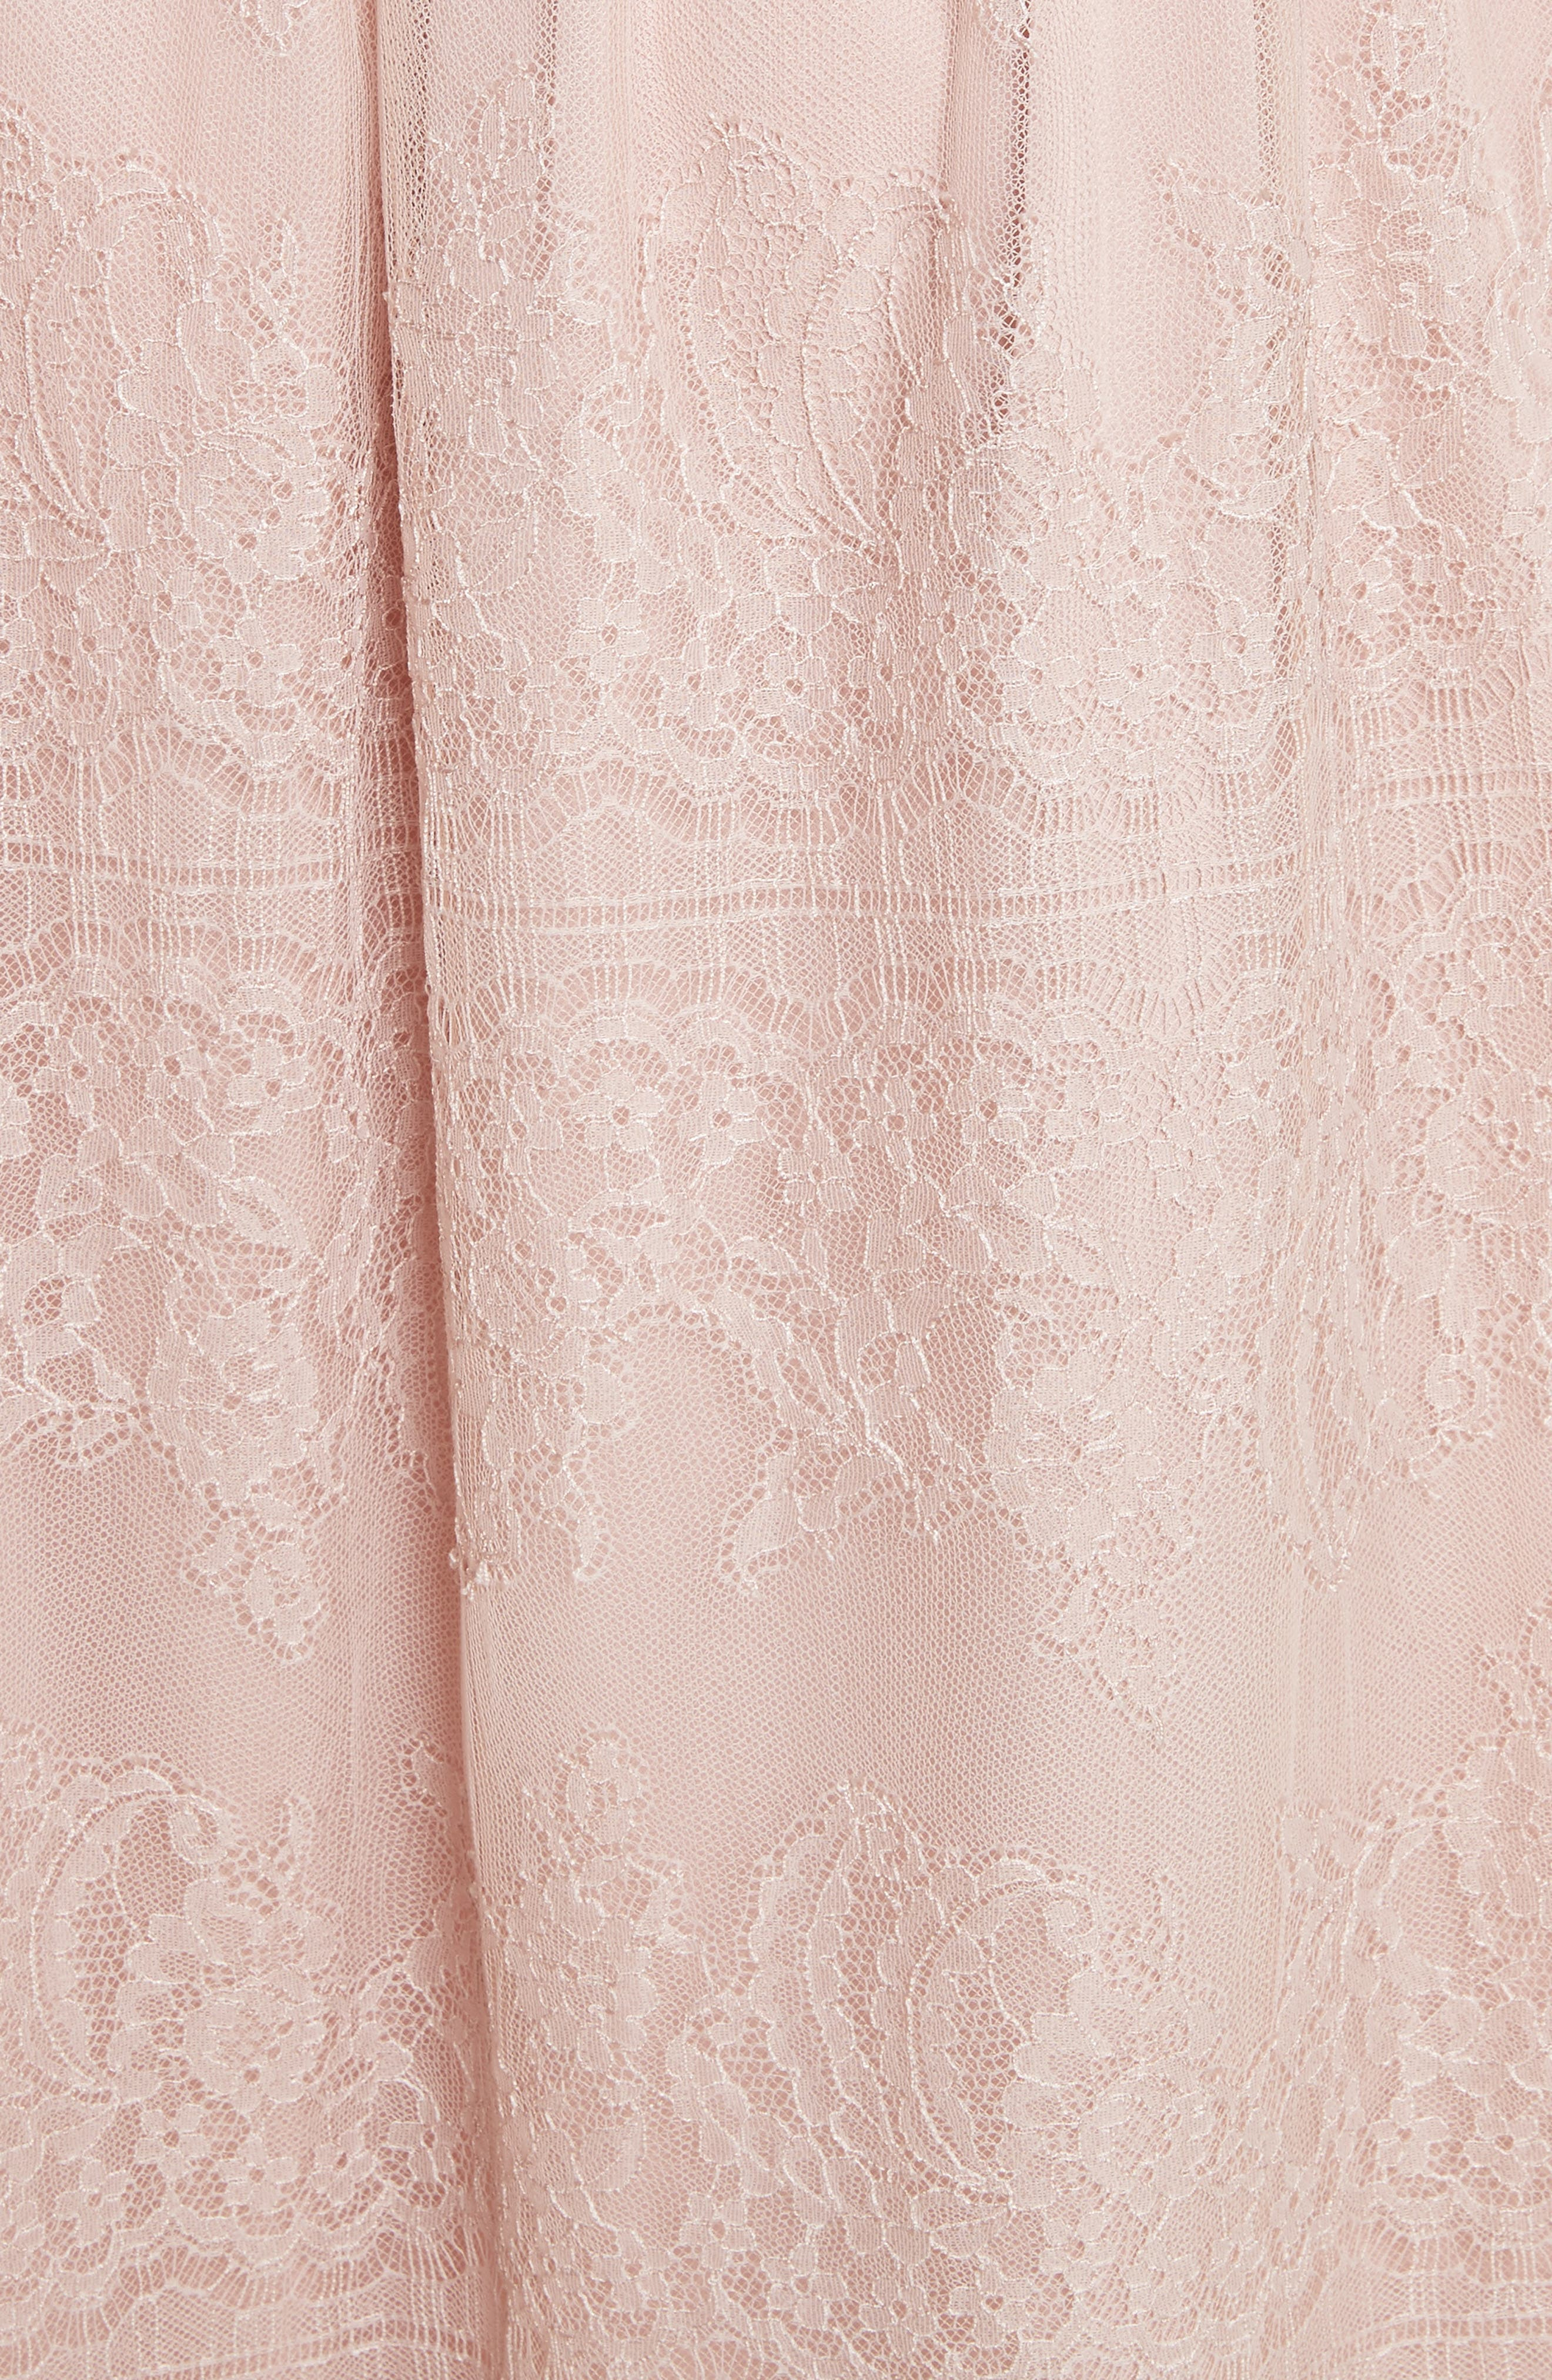 Chantilly Lace Gathered Skirt,                             Alternate thumbnail 5, color,                             Powder